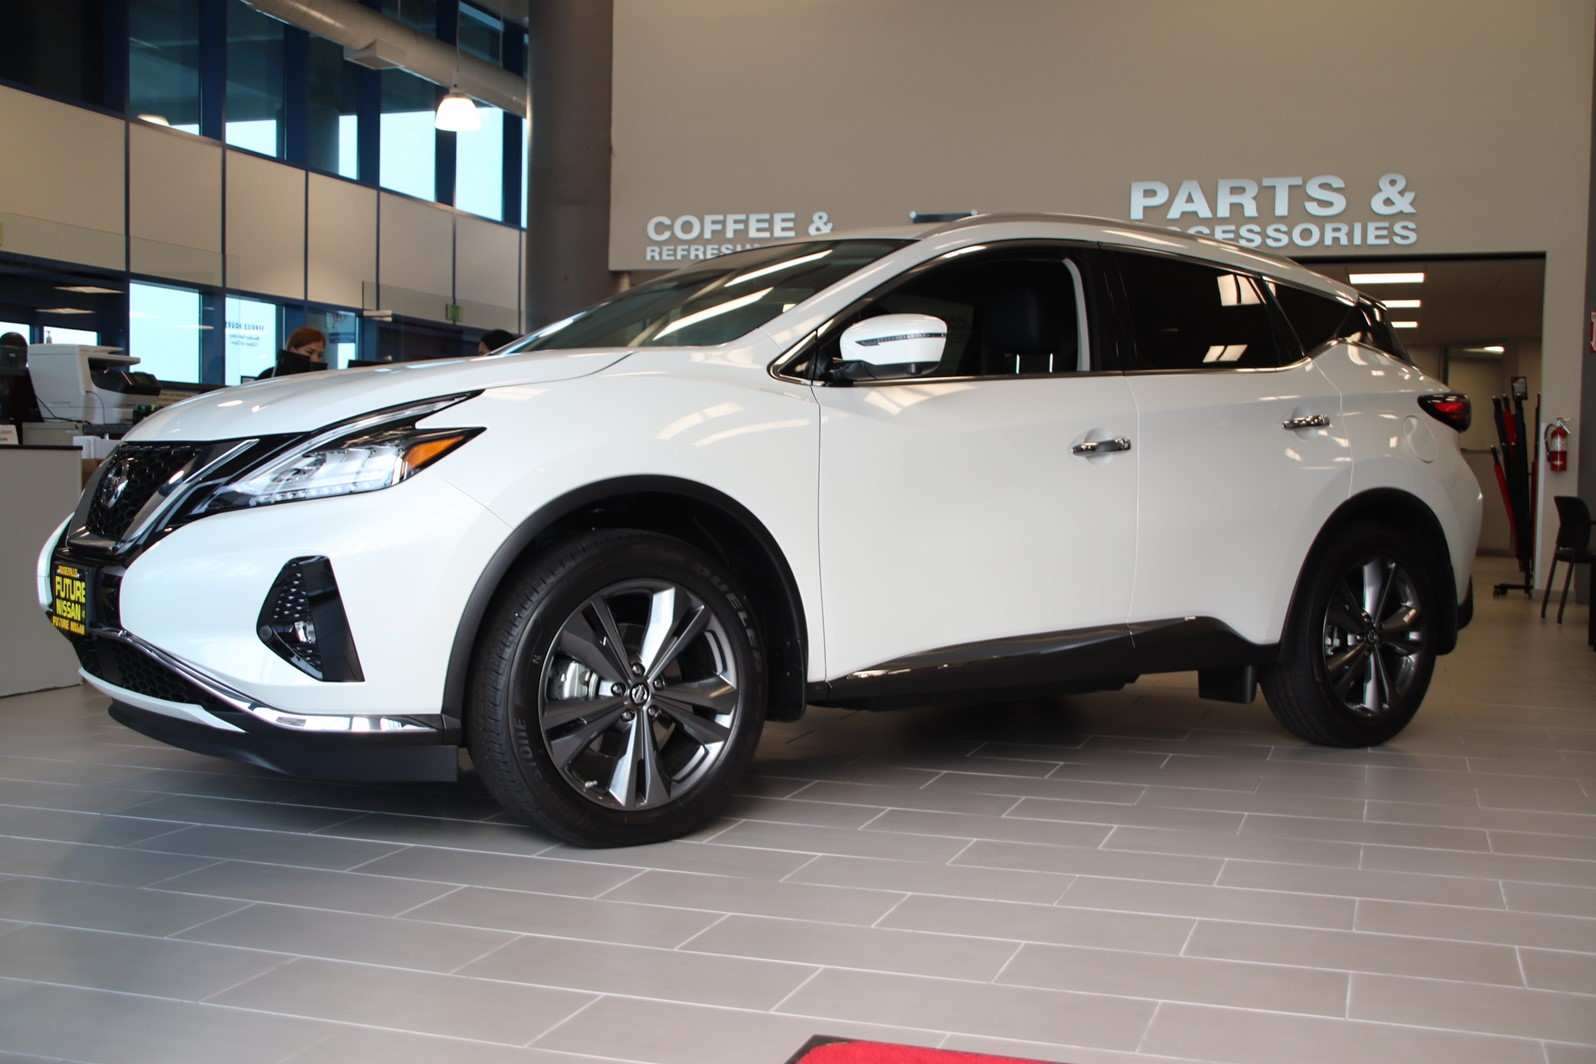 92 Great New Murano Nissan 2019 Picture Model with New Murano Nissan 2019 Picture